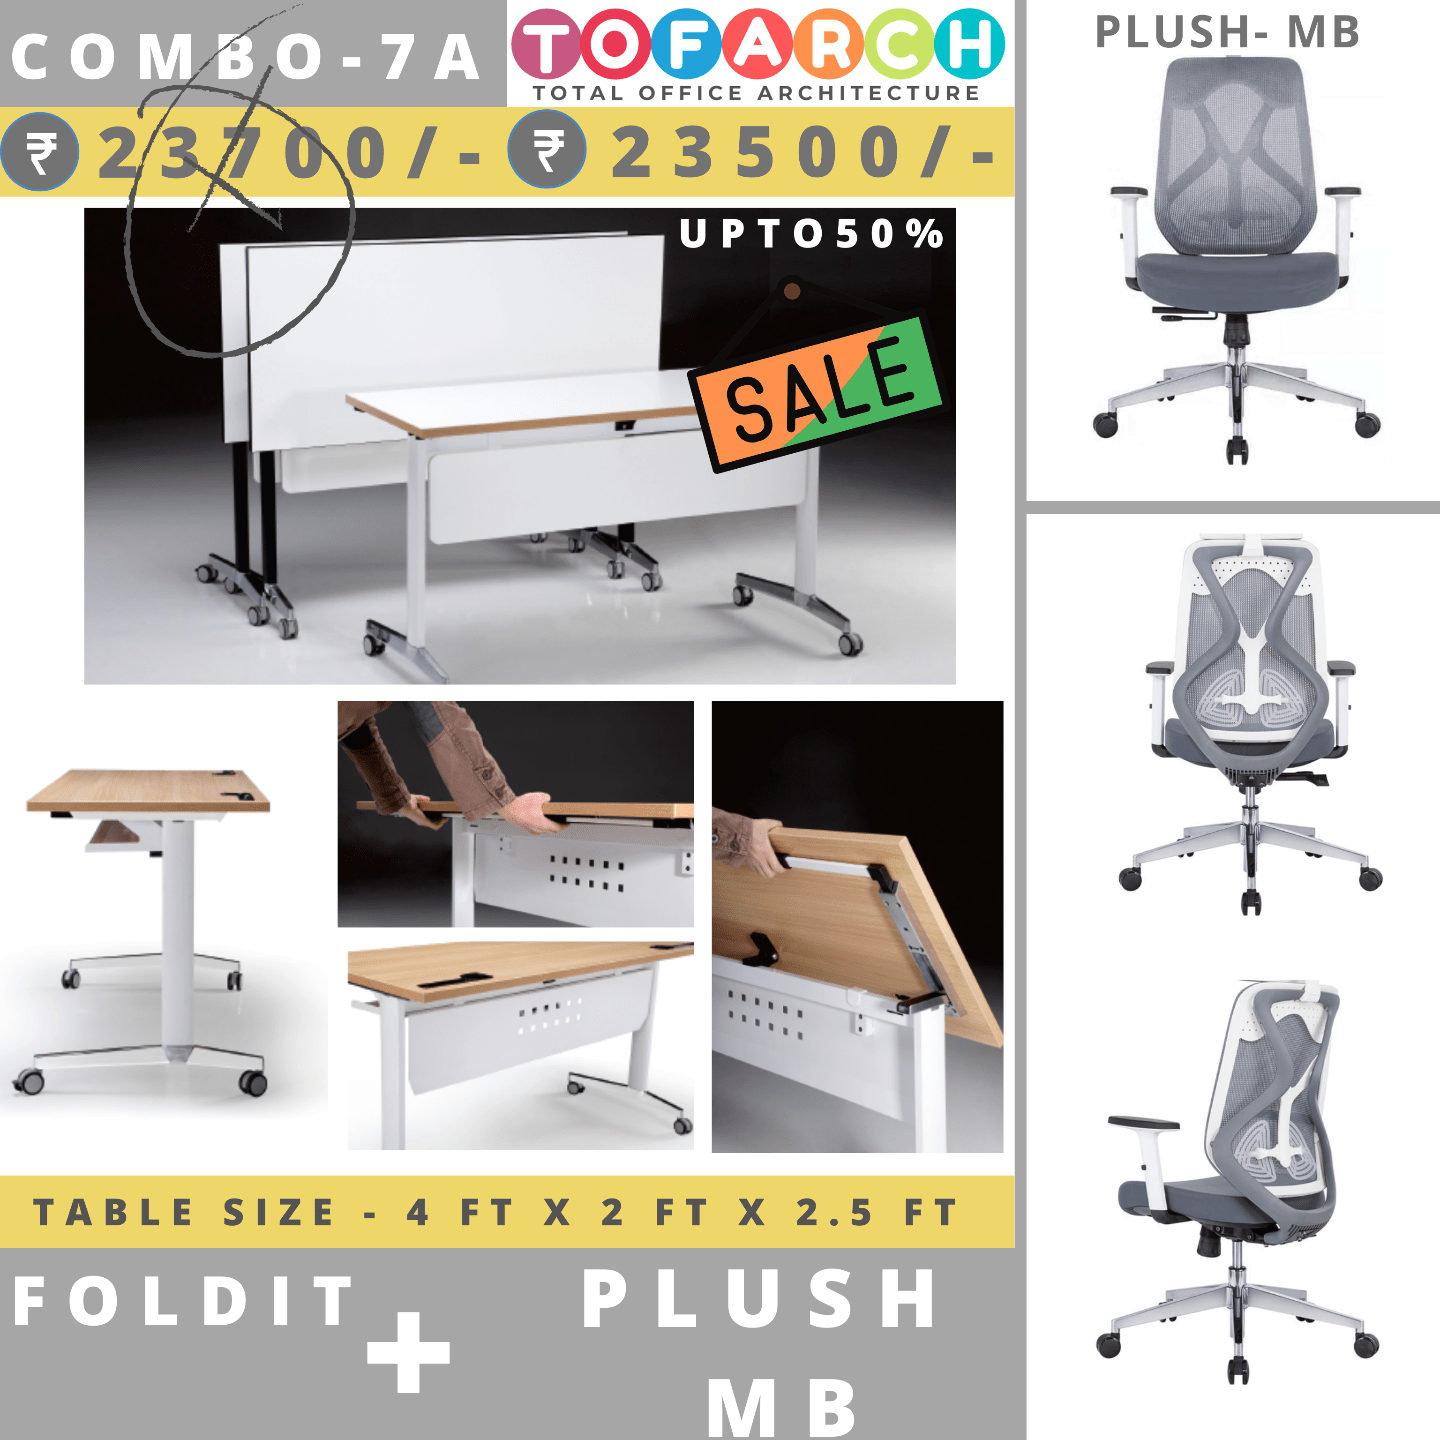 Table Chair Combo - 7A (FOLDIT Table + PLUSH MB Chair)